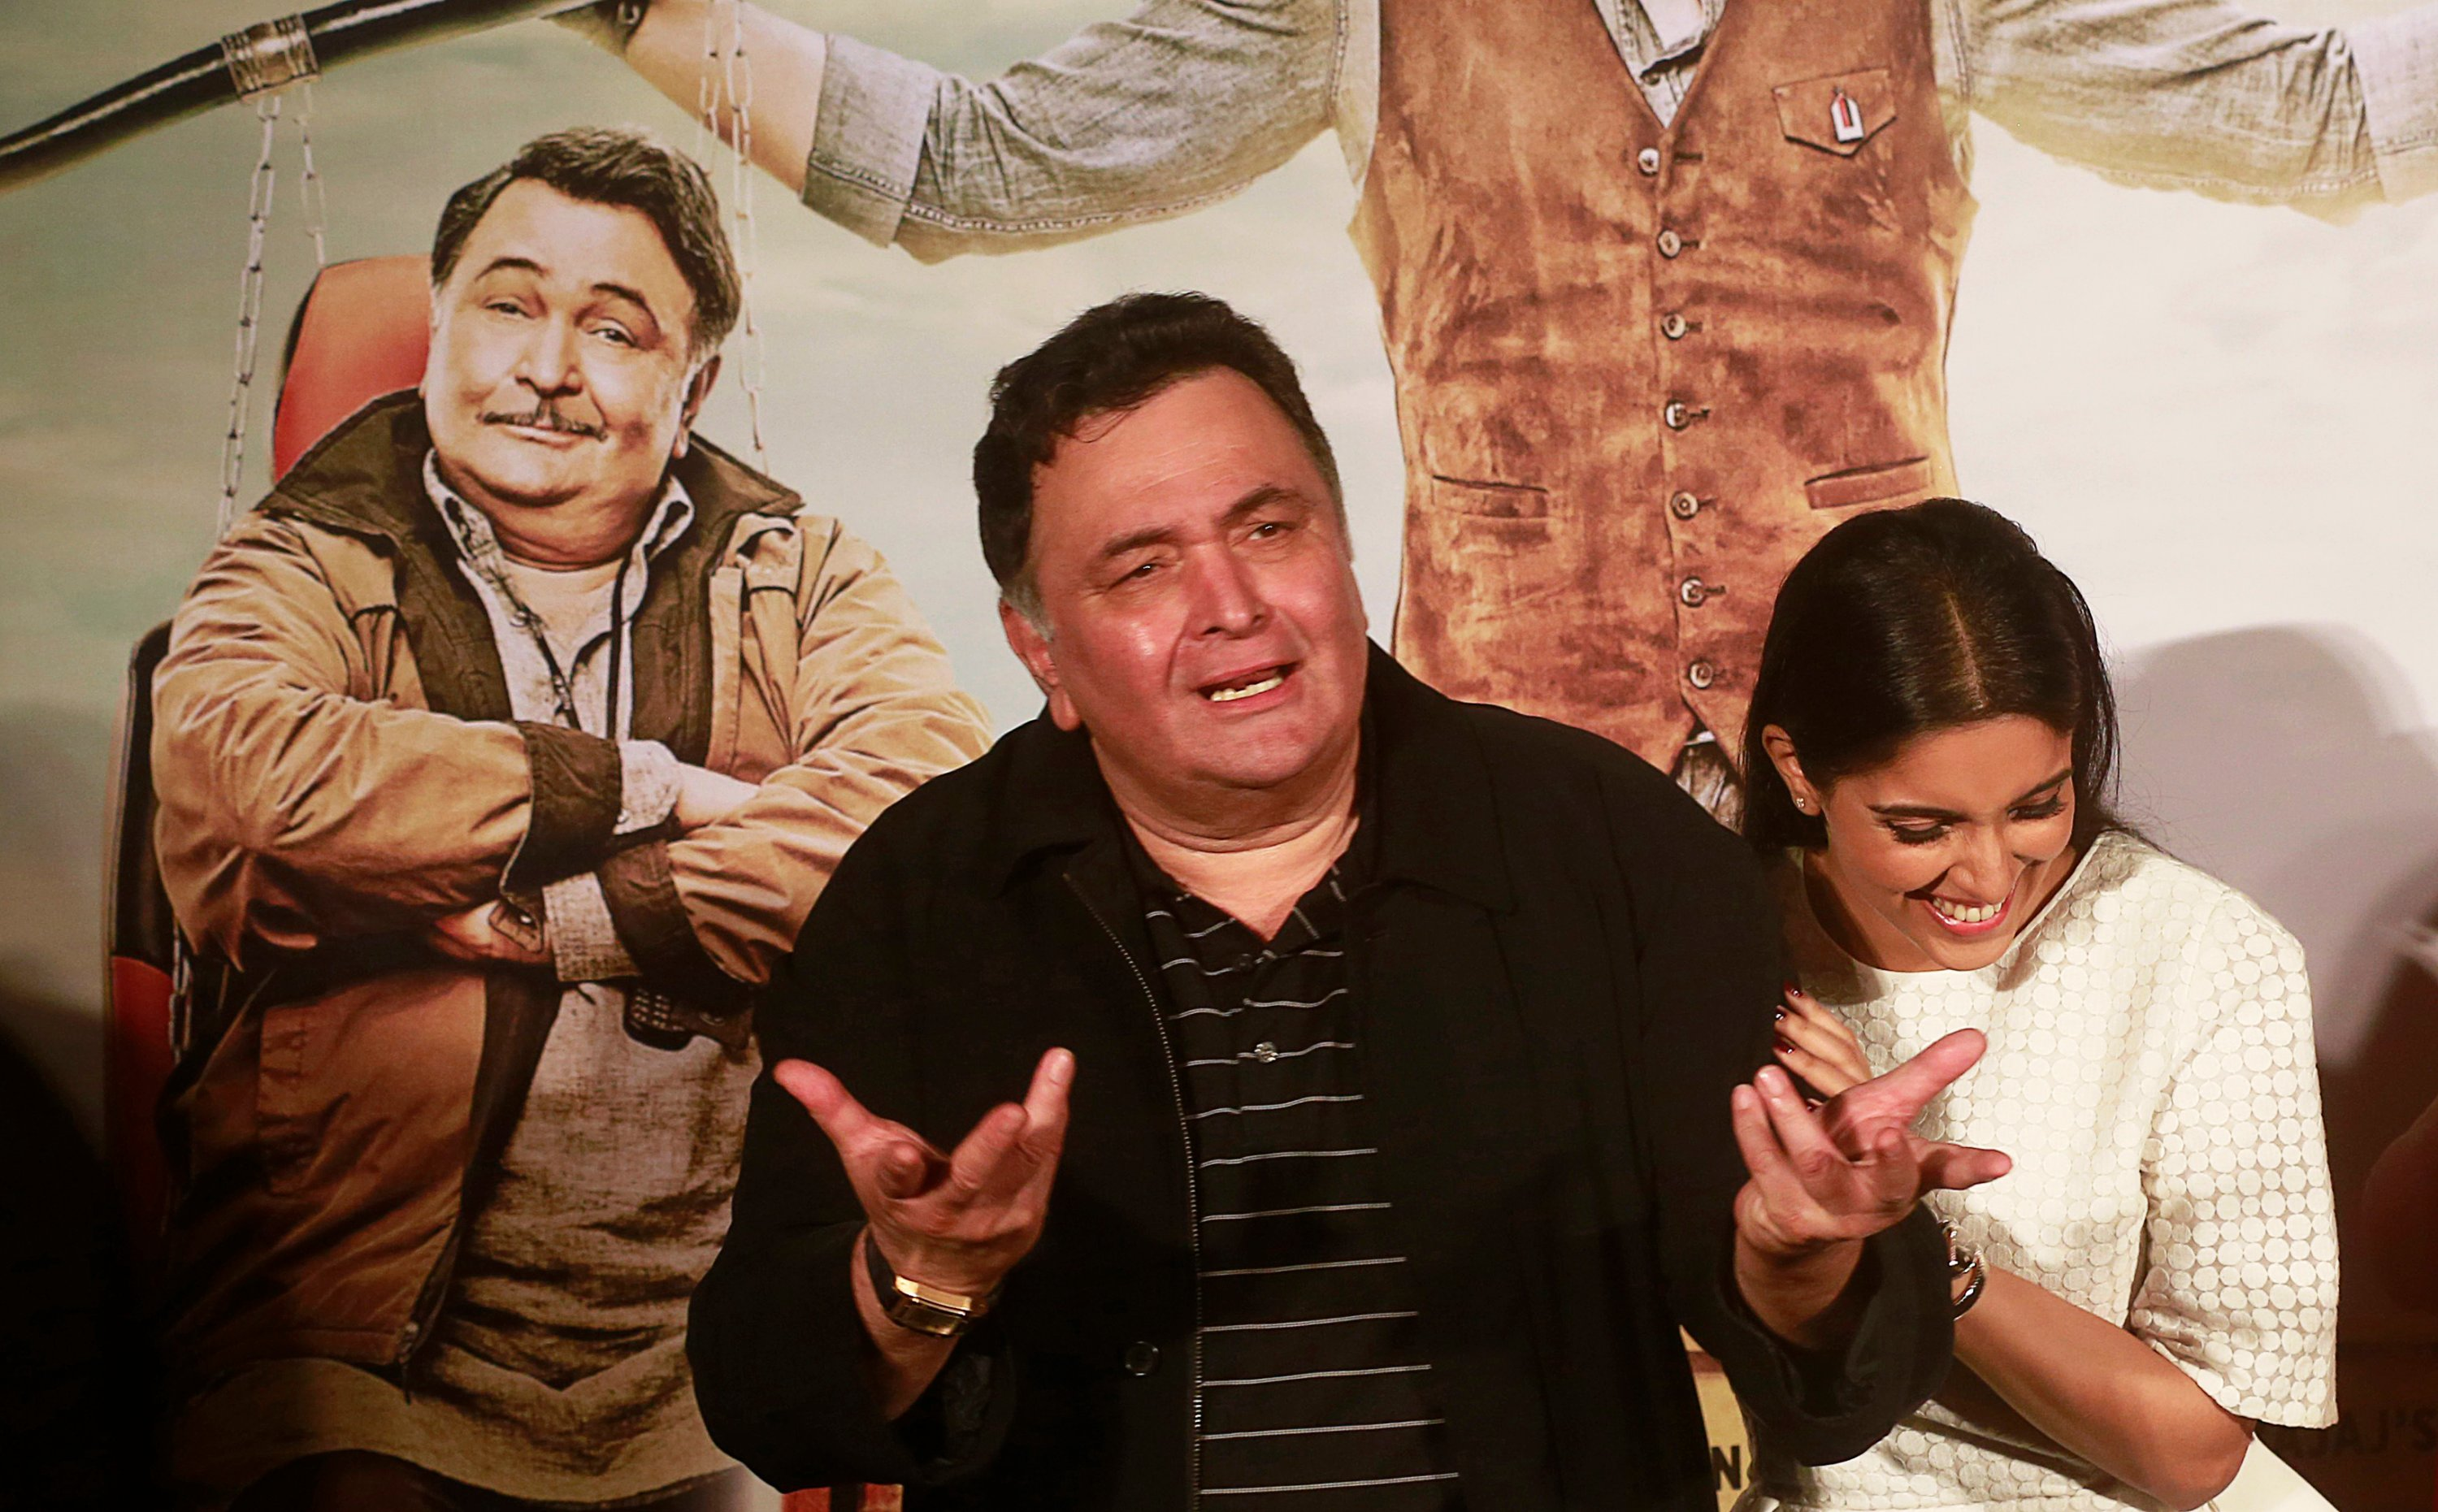 In a July 1, 2015, file photo, Bollywood actor Rishi Kapoor speaks during the trailer launch of his upcoming movie 'All is Well' in Mumbai, India. (AP Photo)